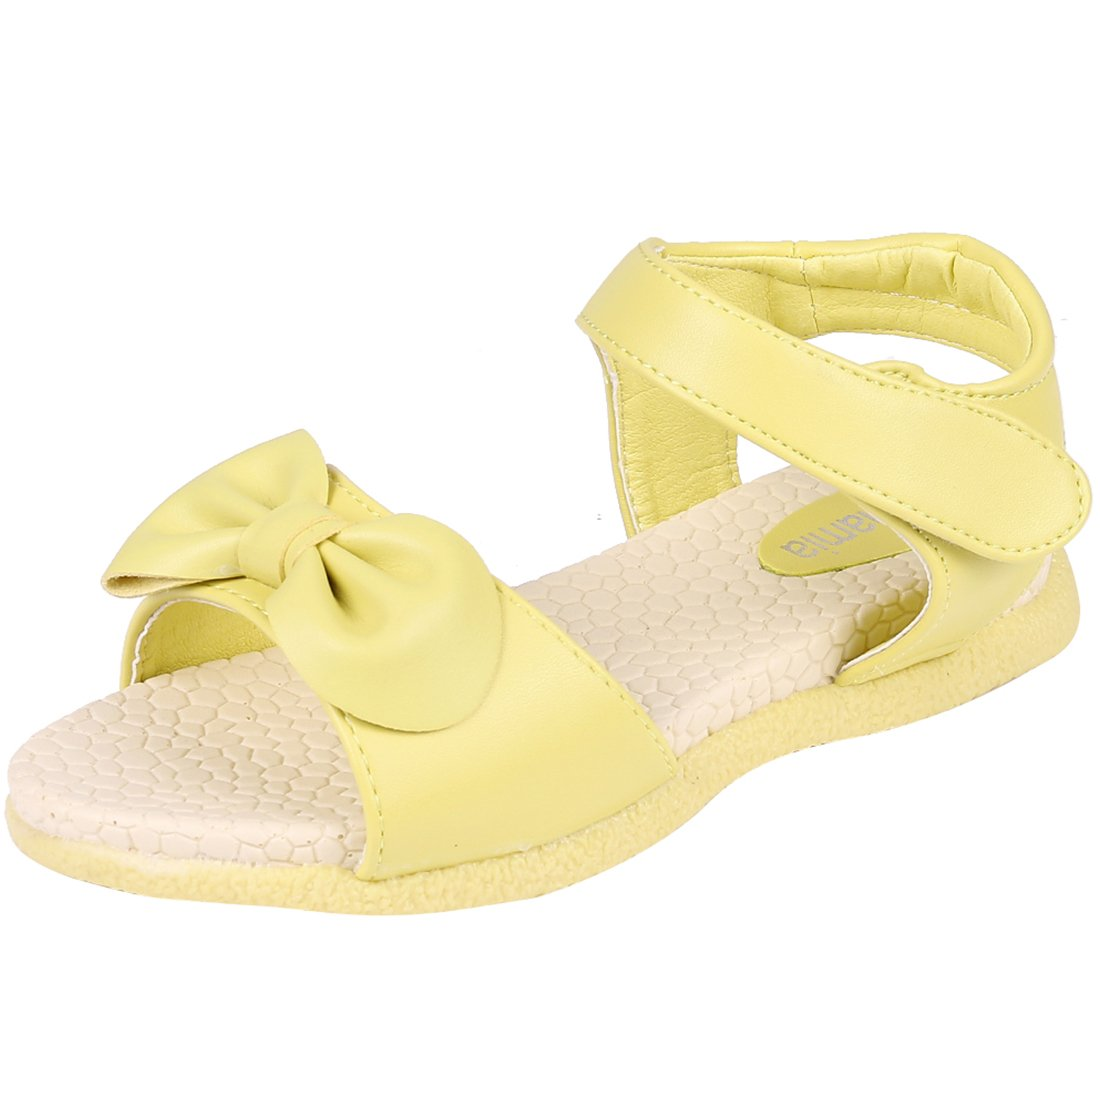 Kids Girl's Bow Yellow Open Toe Flat Strap Leather Sandals (Toddler/Little Kid/Big Kid)